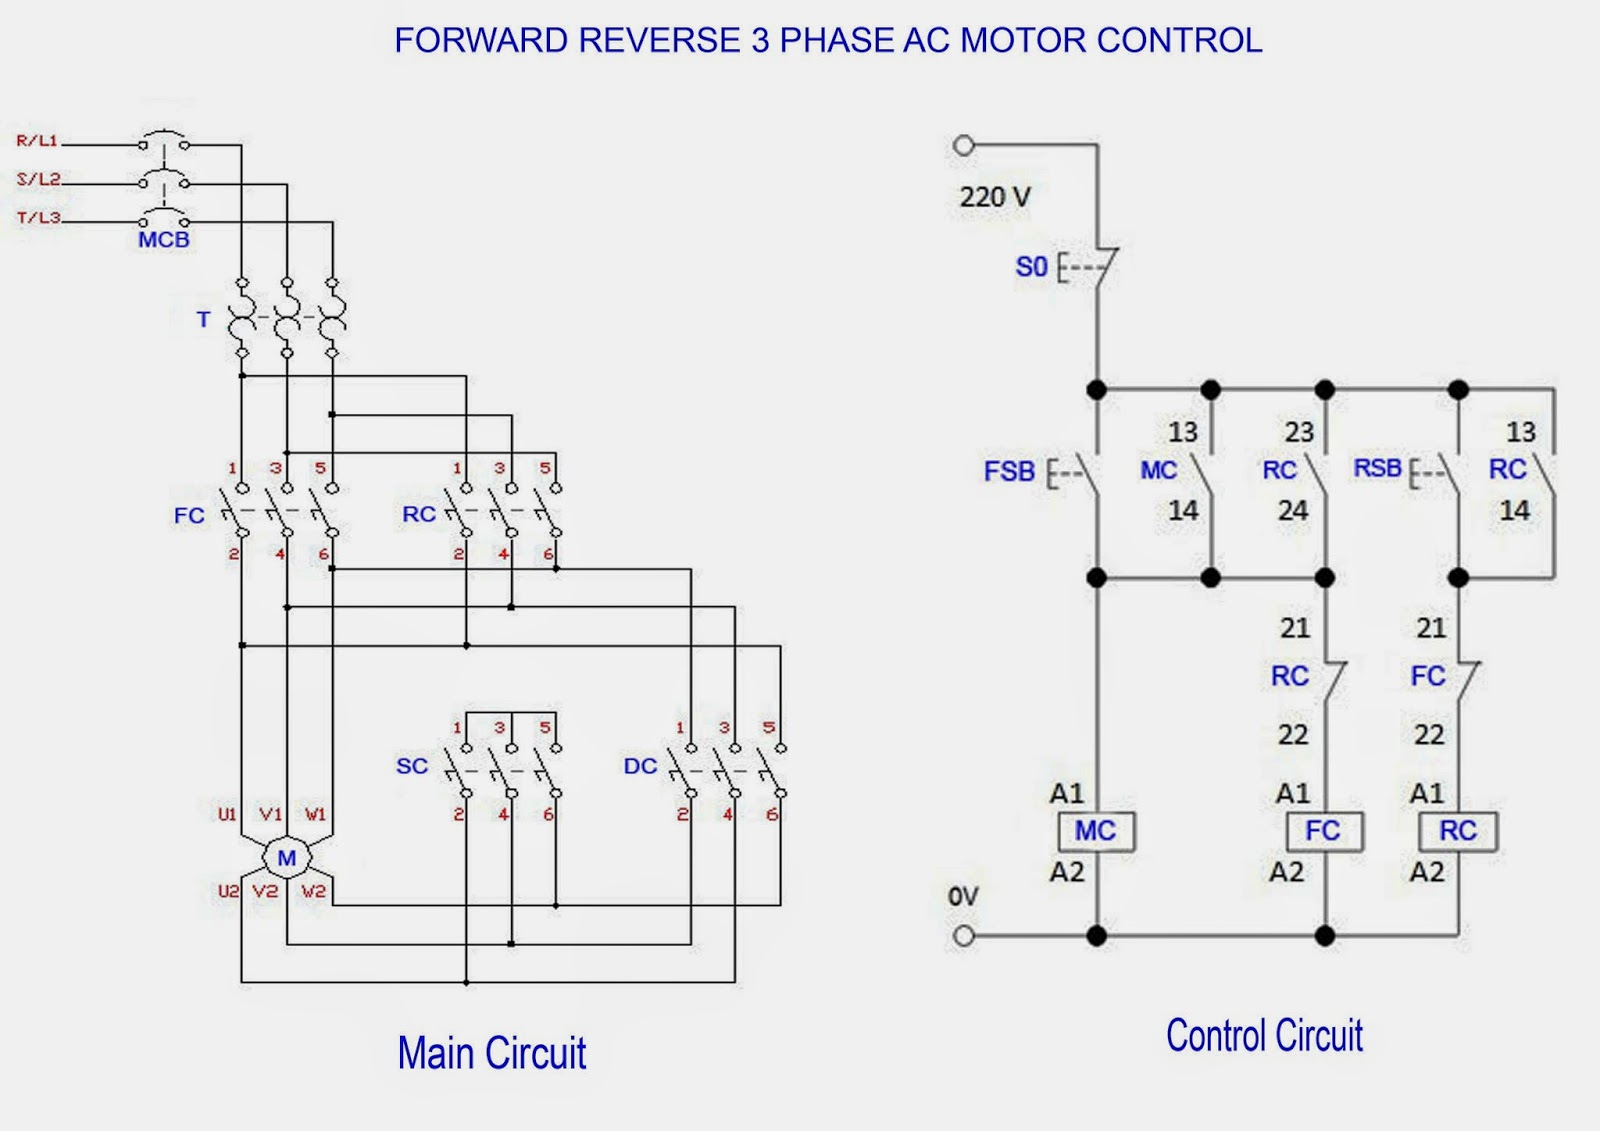 3 phase electrical phasor diagram wiring schematic wiring library rh 63 codingcommunity de 3 phase contactor wiring diagram forward reverse 3 phase ac motor control wiring diagram electrical 6 wire 3 phase motor wiring